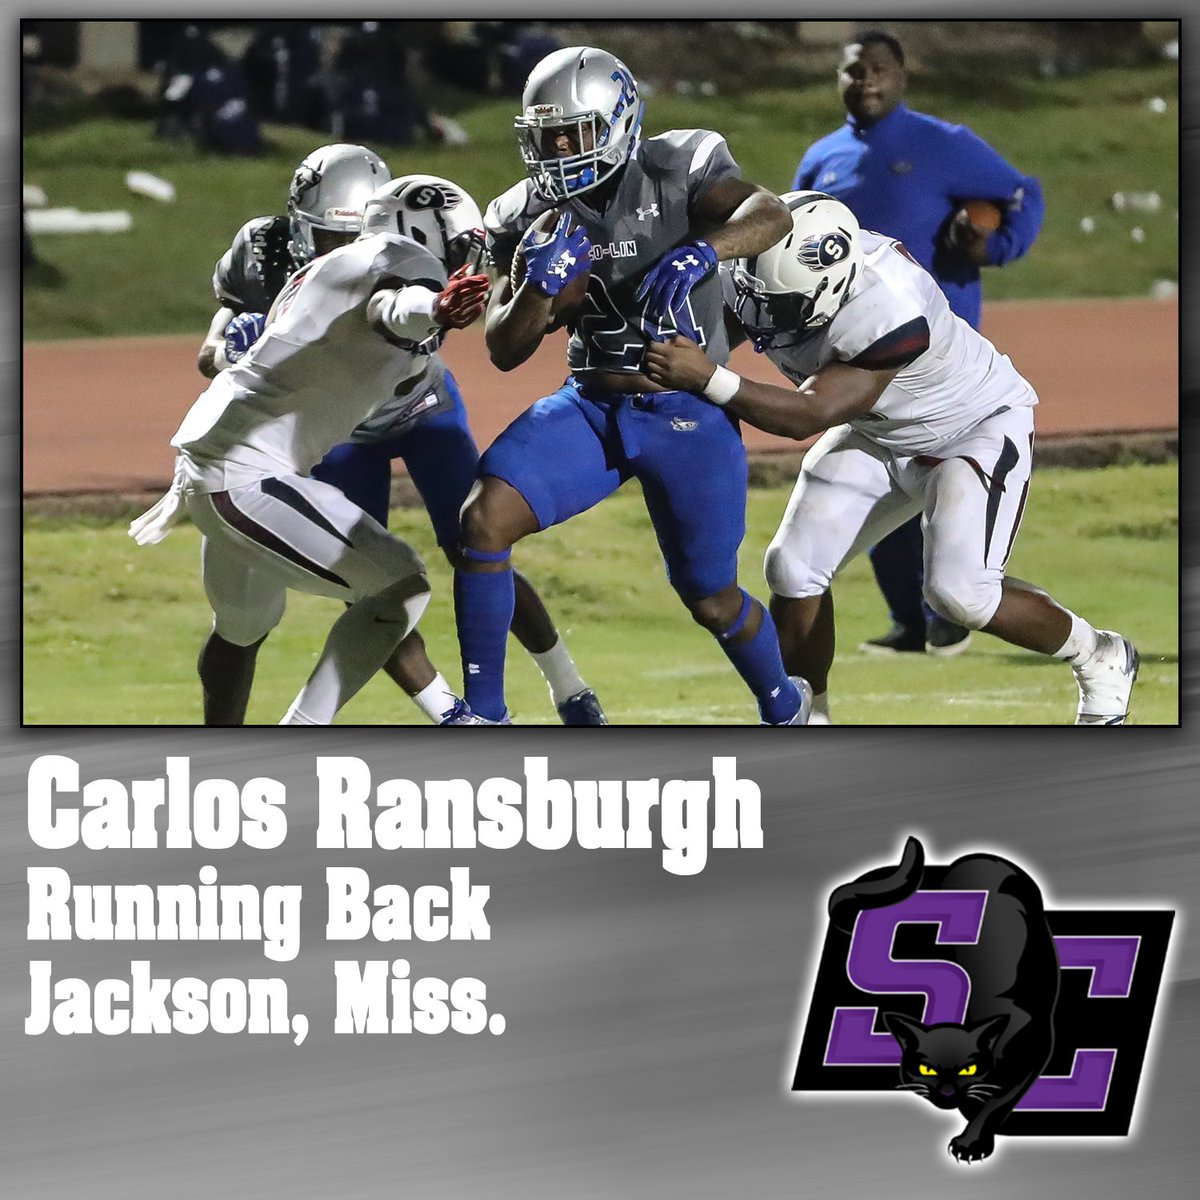 SIGNED | Congrats to Carlos Ransburgh for signing with @buildersports!